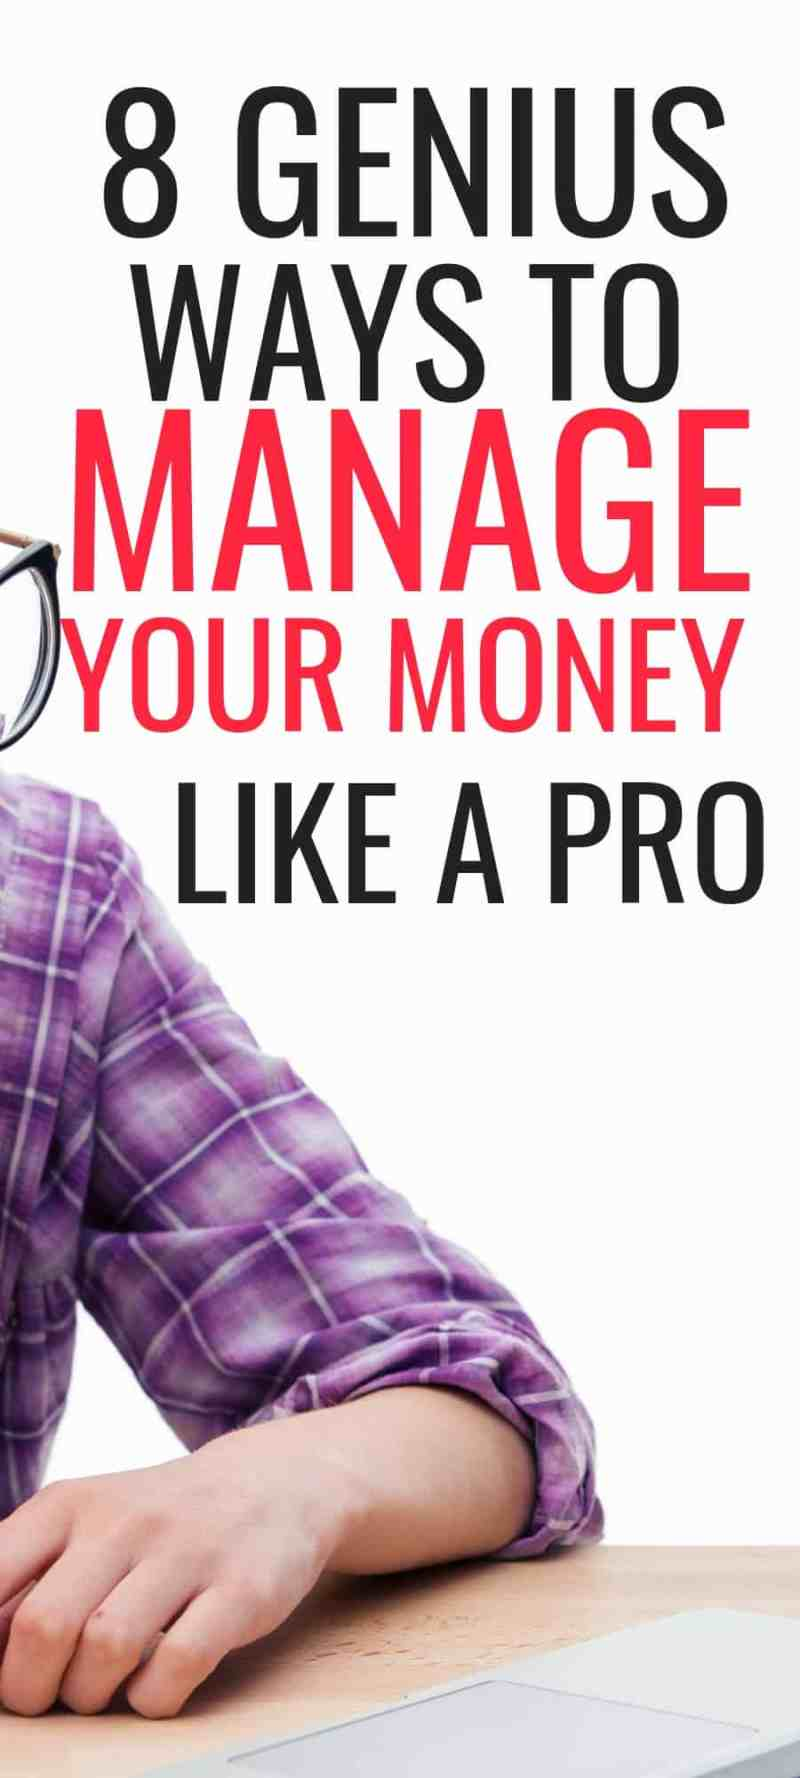 These genius ways to manage money are THE BEST! Im so glad I found these awesome money management tips. Now I can use these ideas to improve my personal finance, become debt free, make money money and live a better life! Definitely pinning this for later! #moneytips #moneymanagementtips #money #debtfree #saving #personalfinance #business